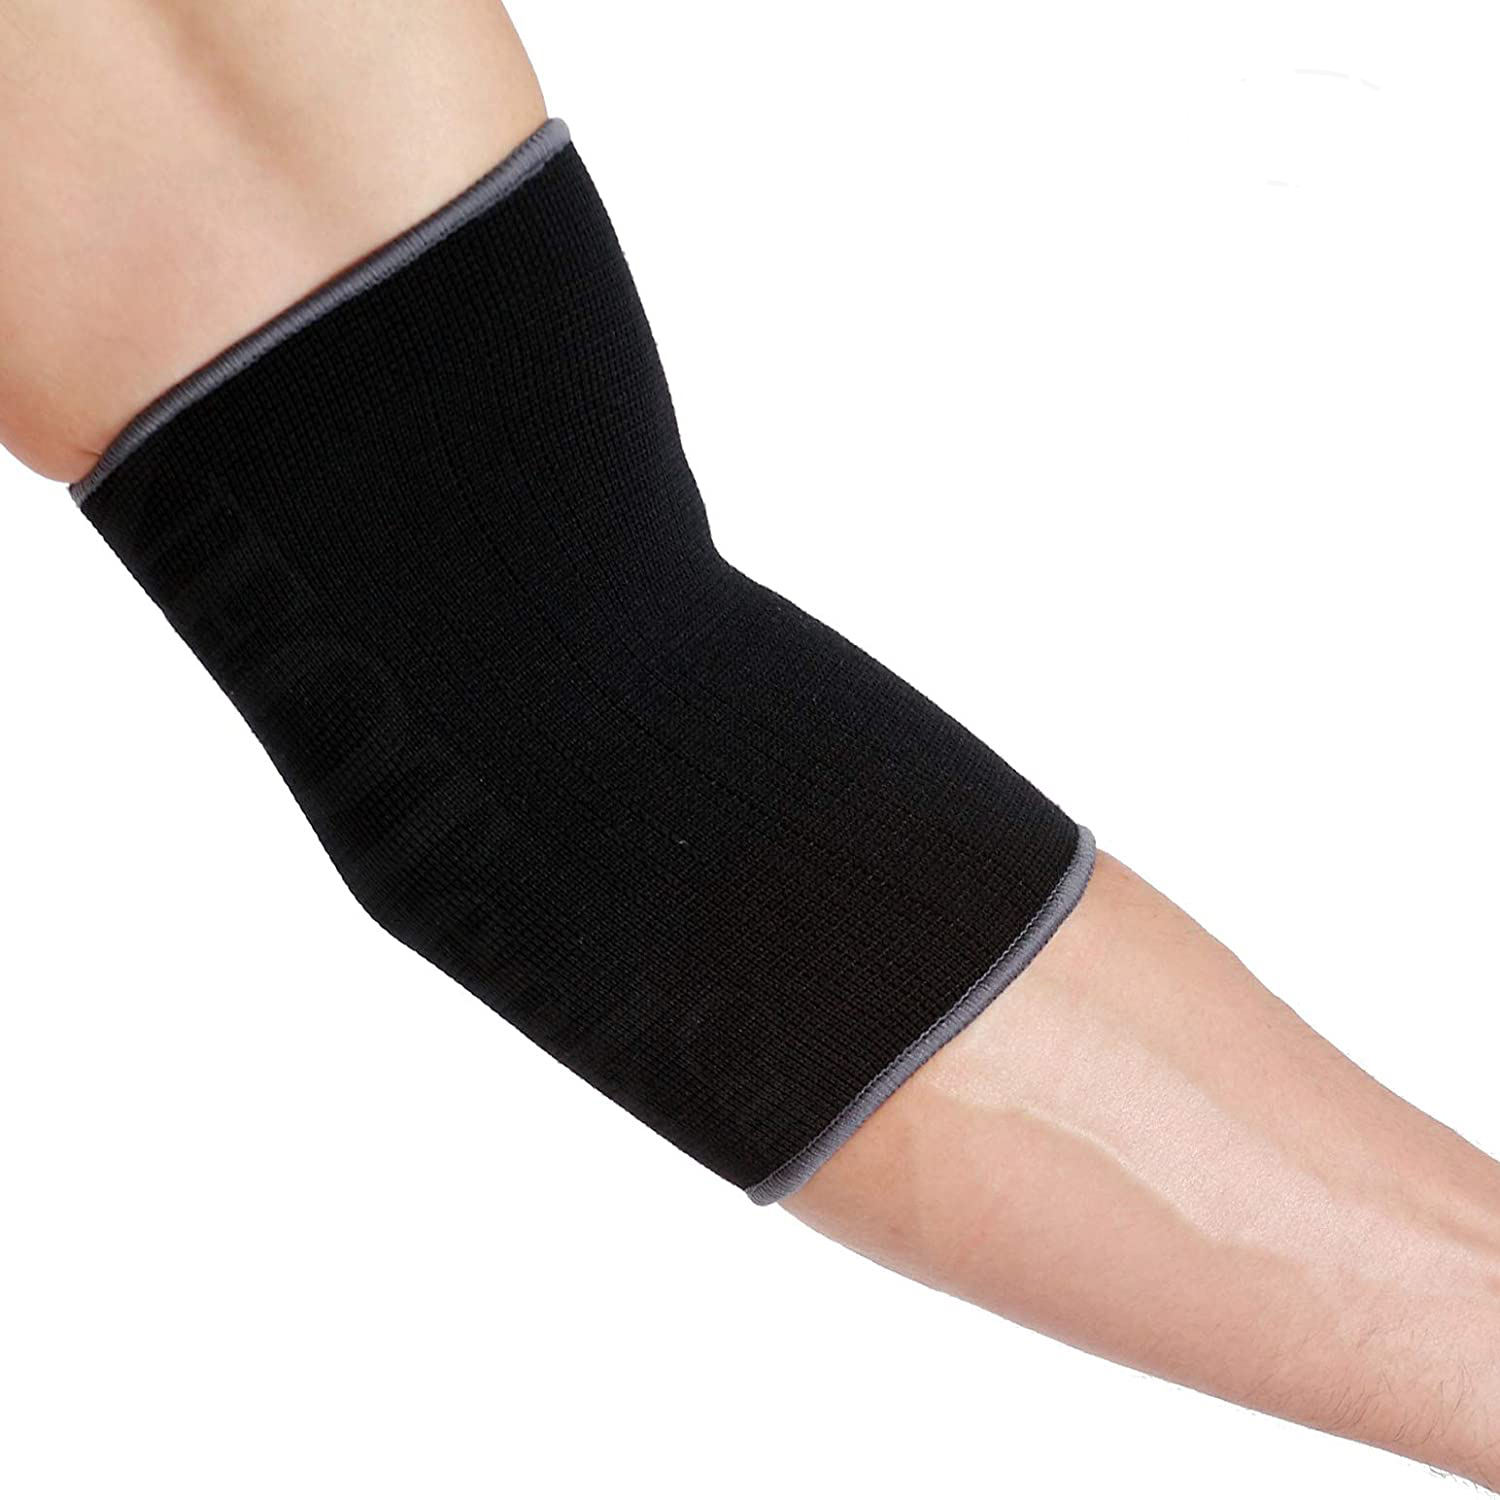 Neoprene Elbow Sleeves Can Dramatically Reduce Aches And Pains During Exercise Add Support And Compression During Arm Workouts